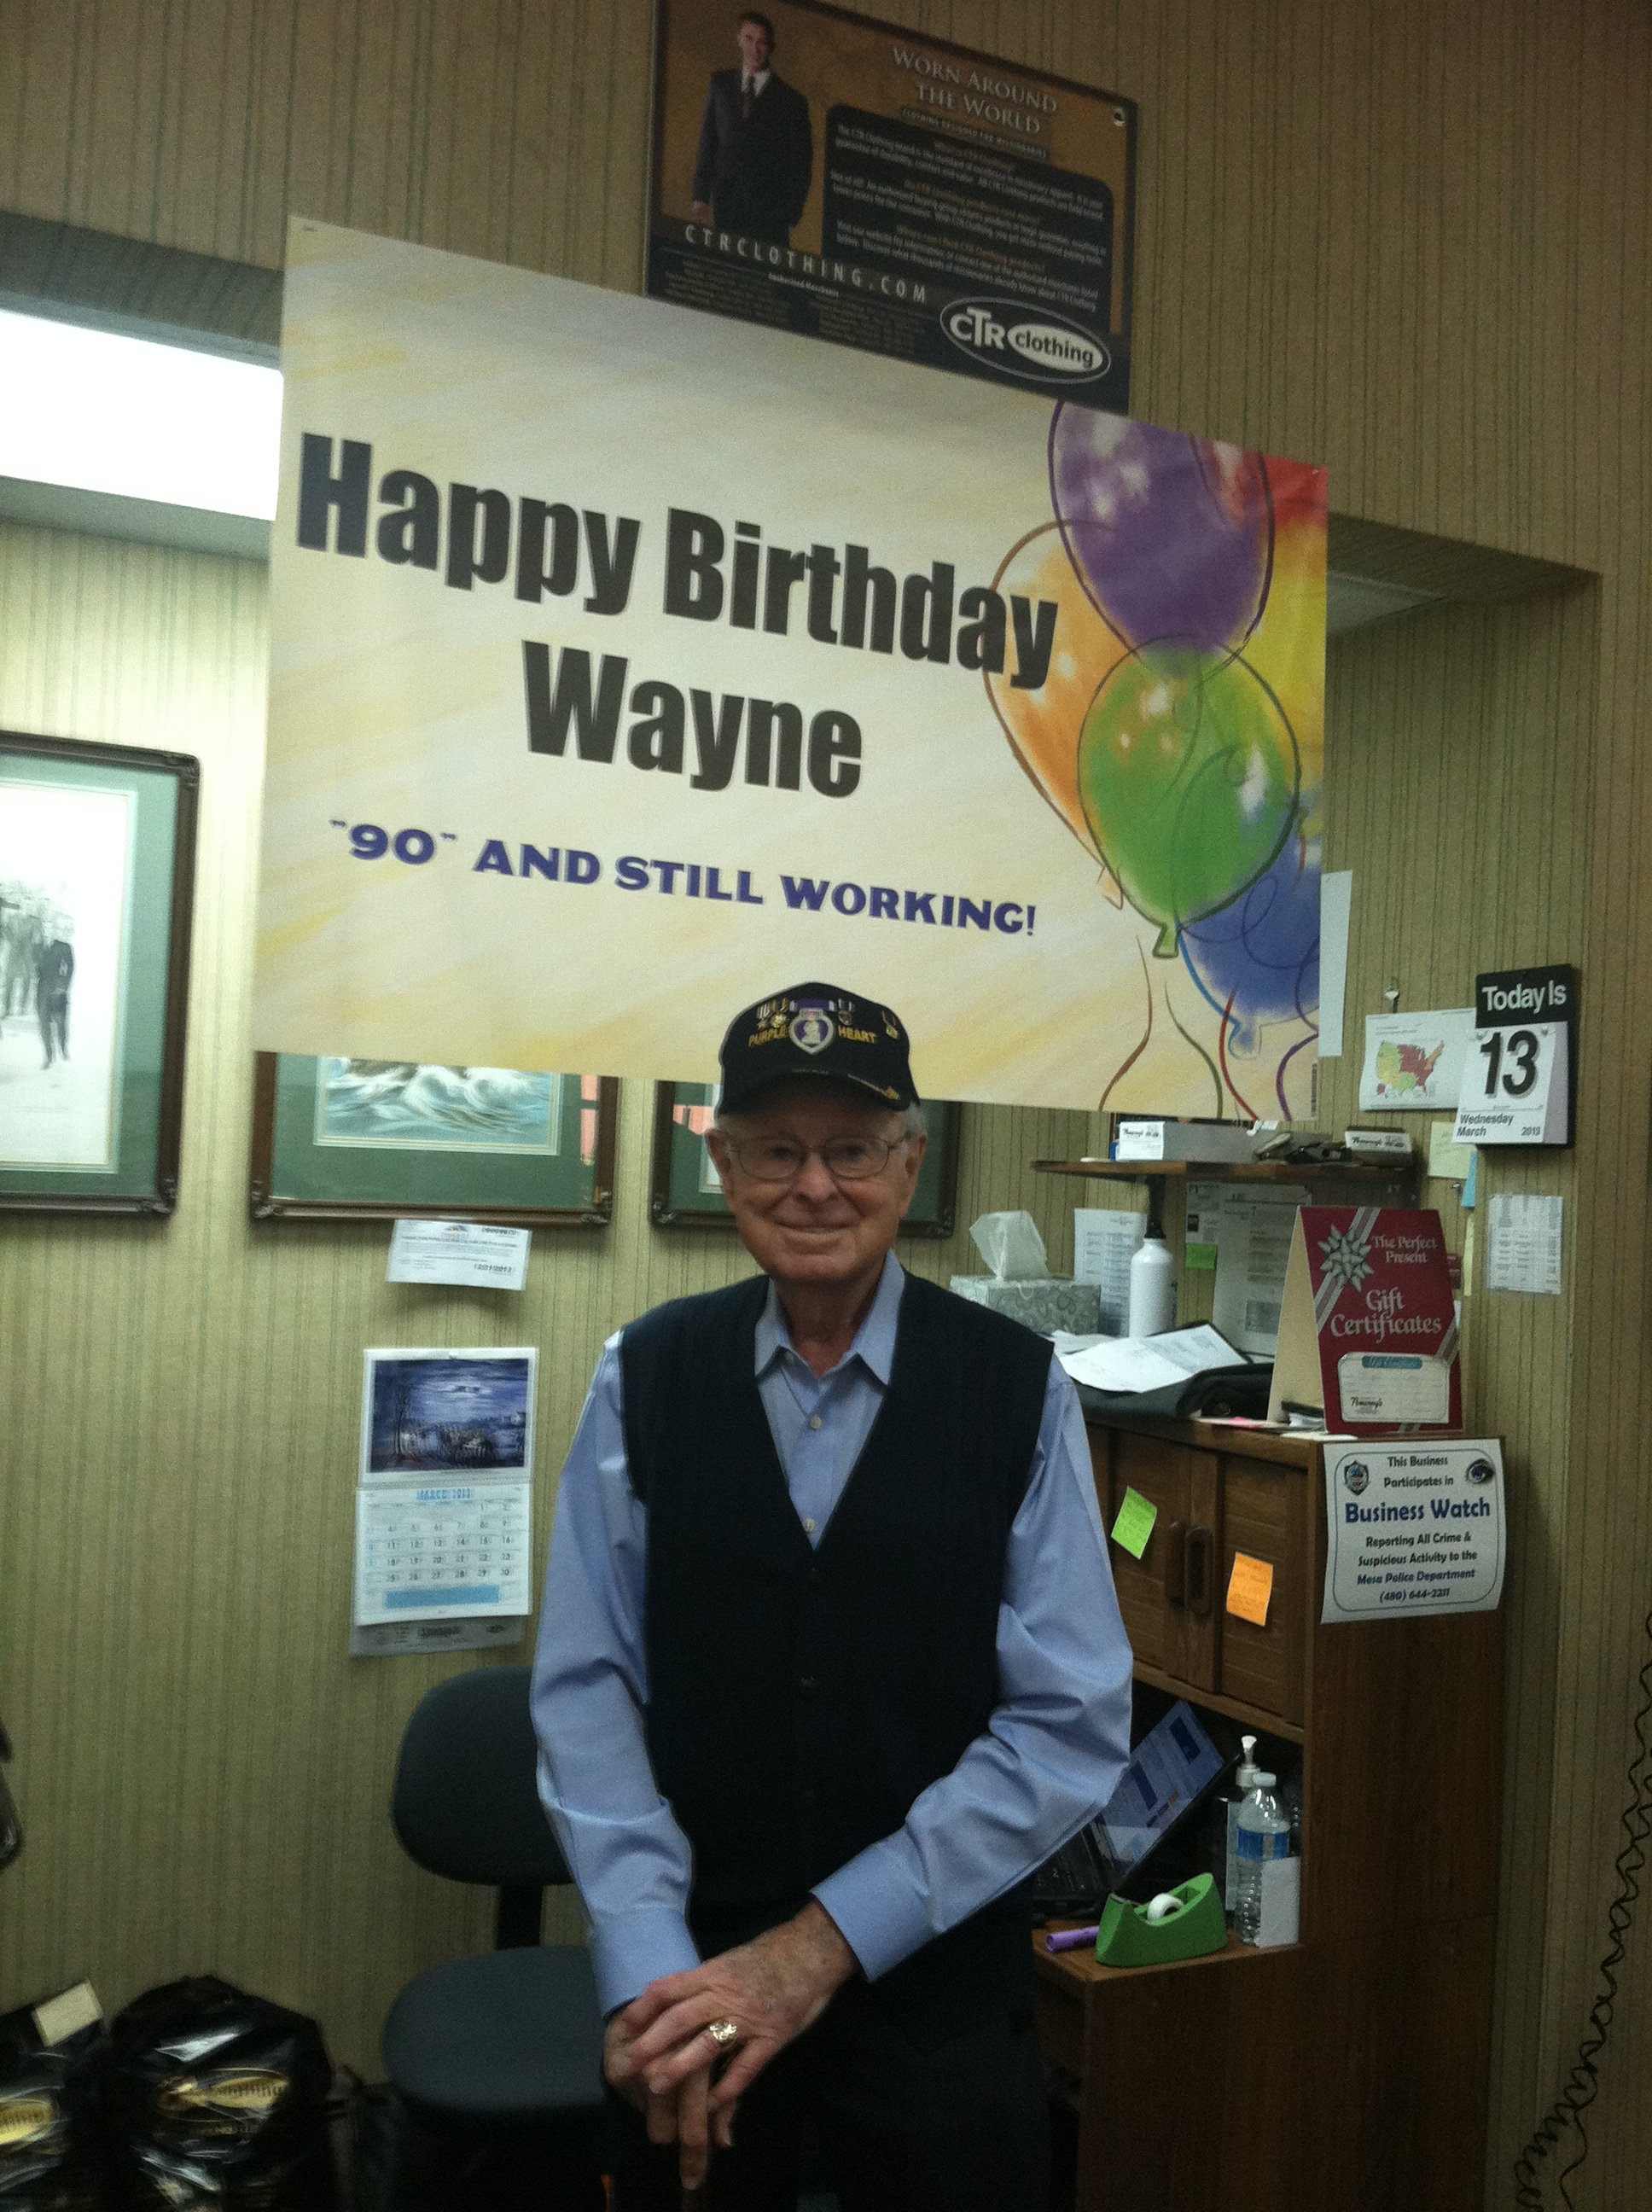 Wayne C. Pomeroy, Owner Pomeroy's Men's Store, Mesa's Downtown Missionary Outfitters, Turns 90.